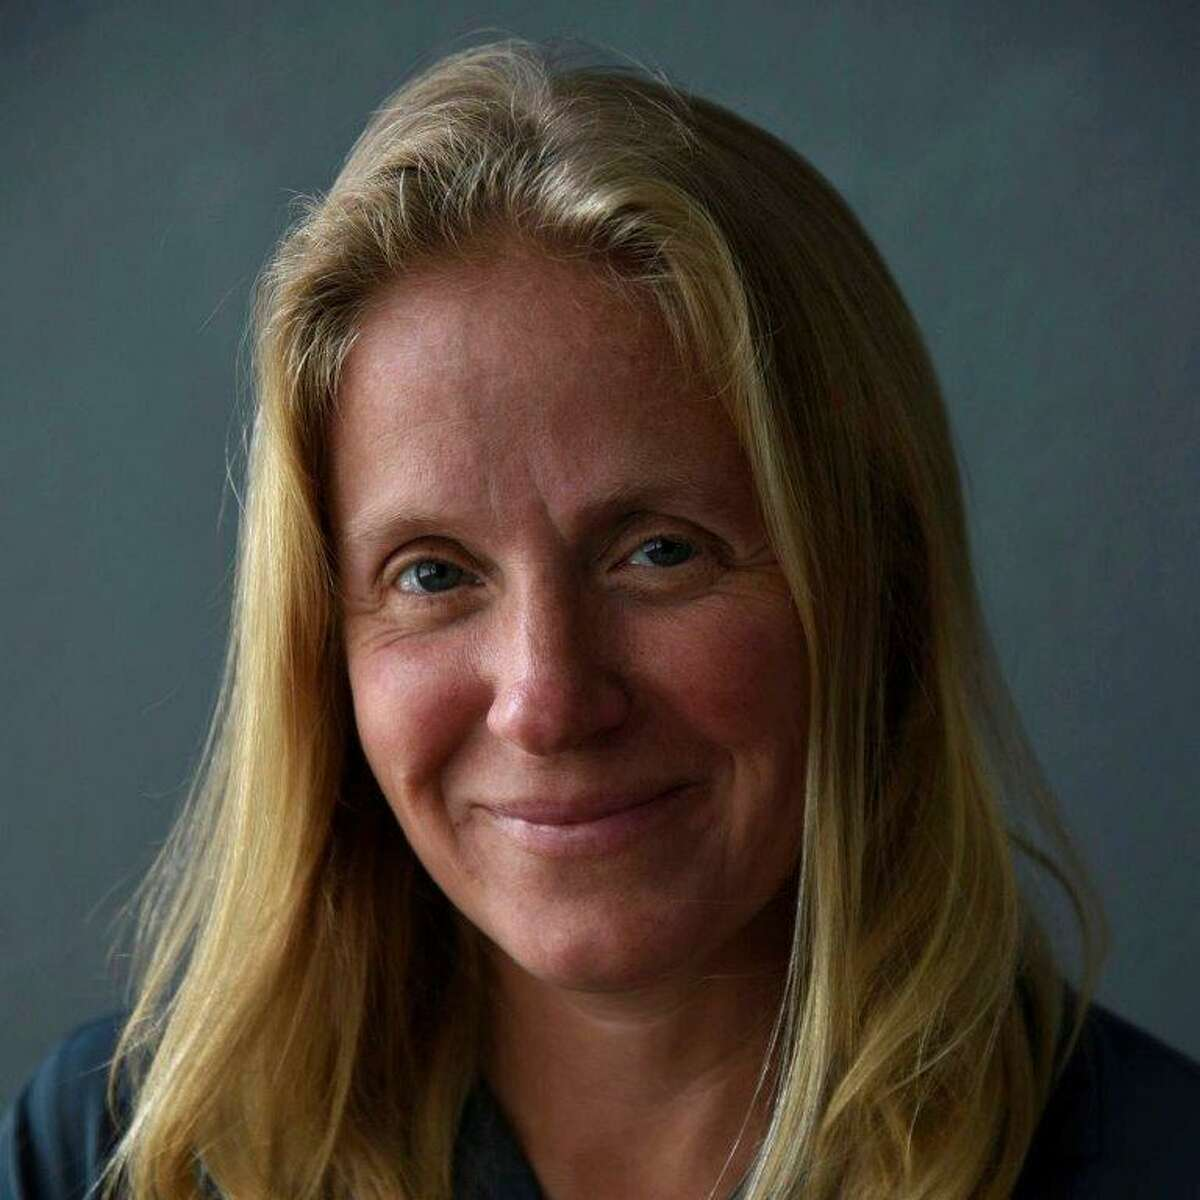 Lisa Krantz, known for documenting the struggles of ordinary people to overcome trauma and illness, has been named a 2020 Nieman Fellow.